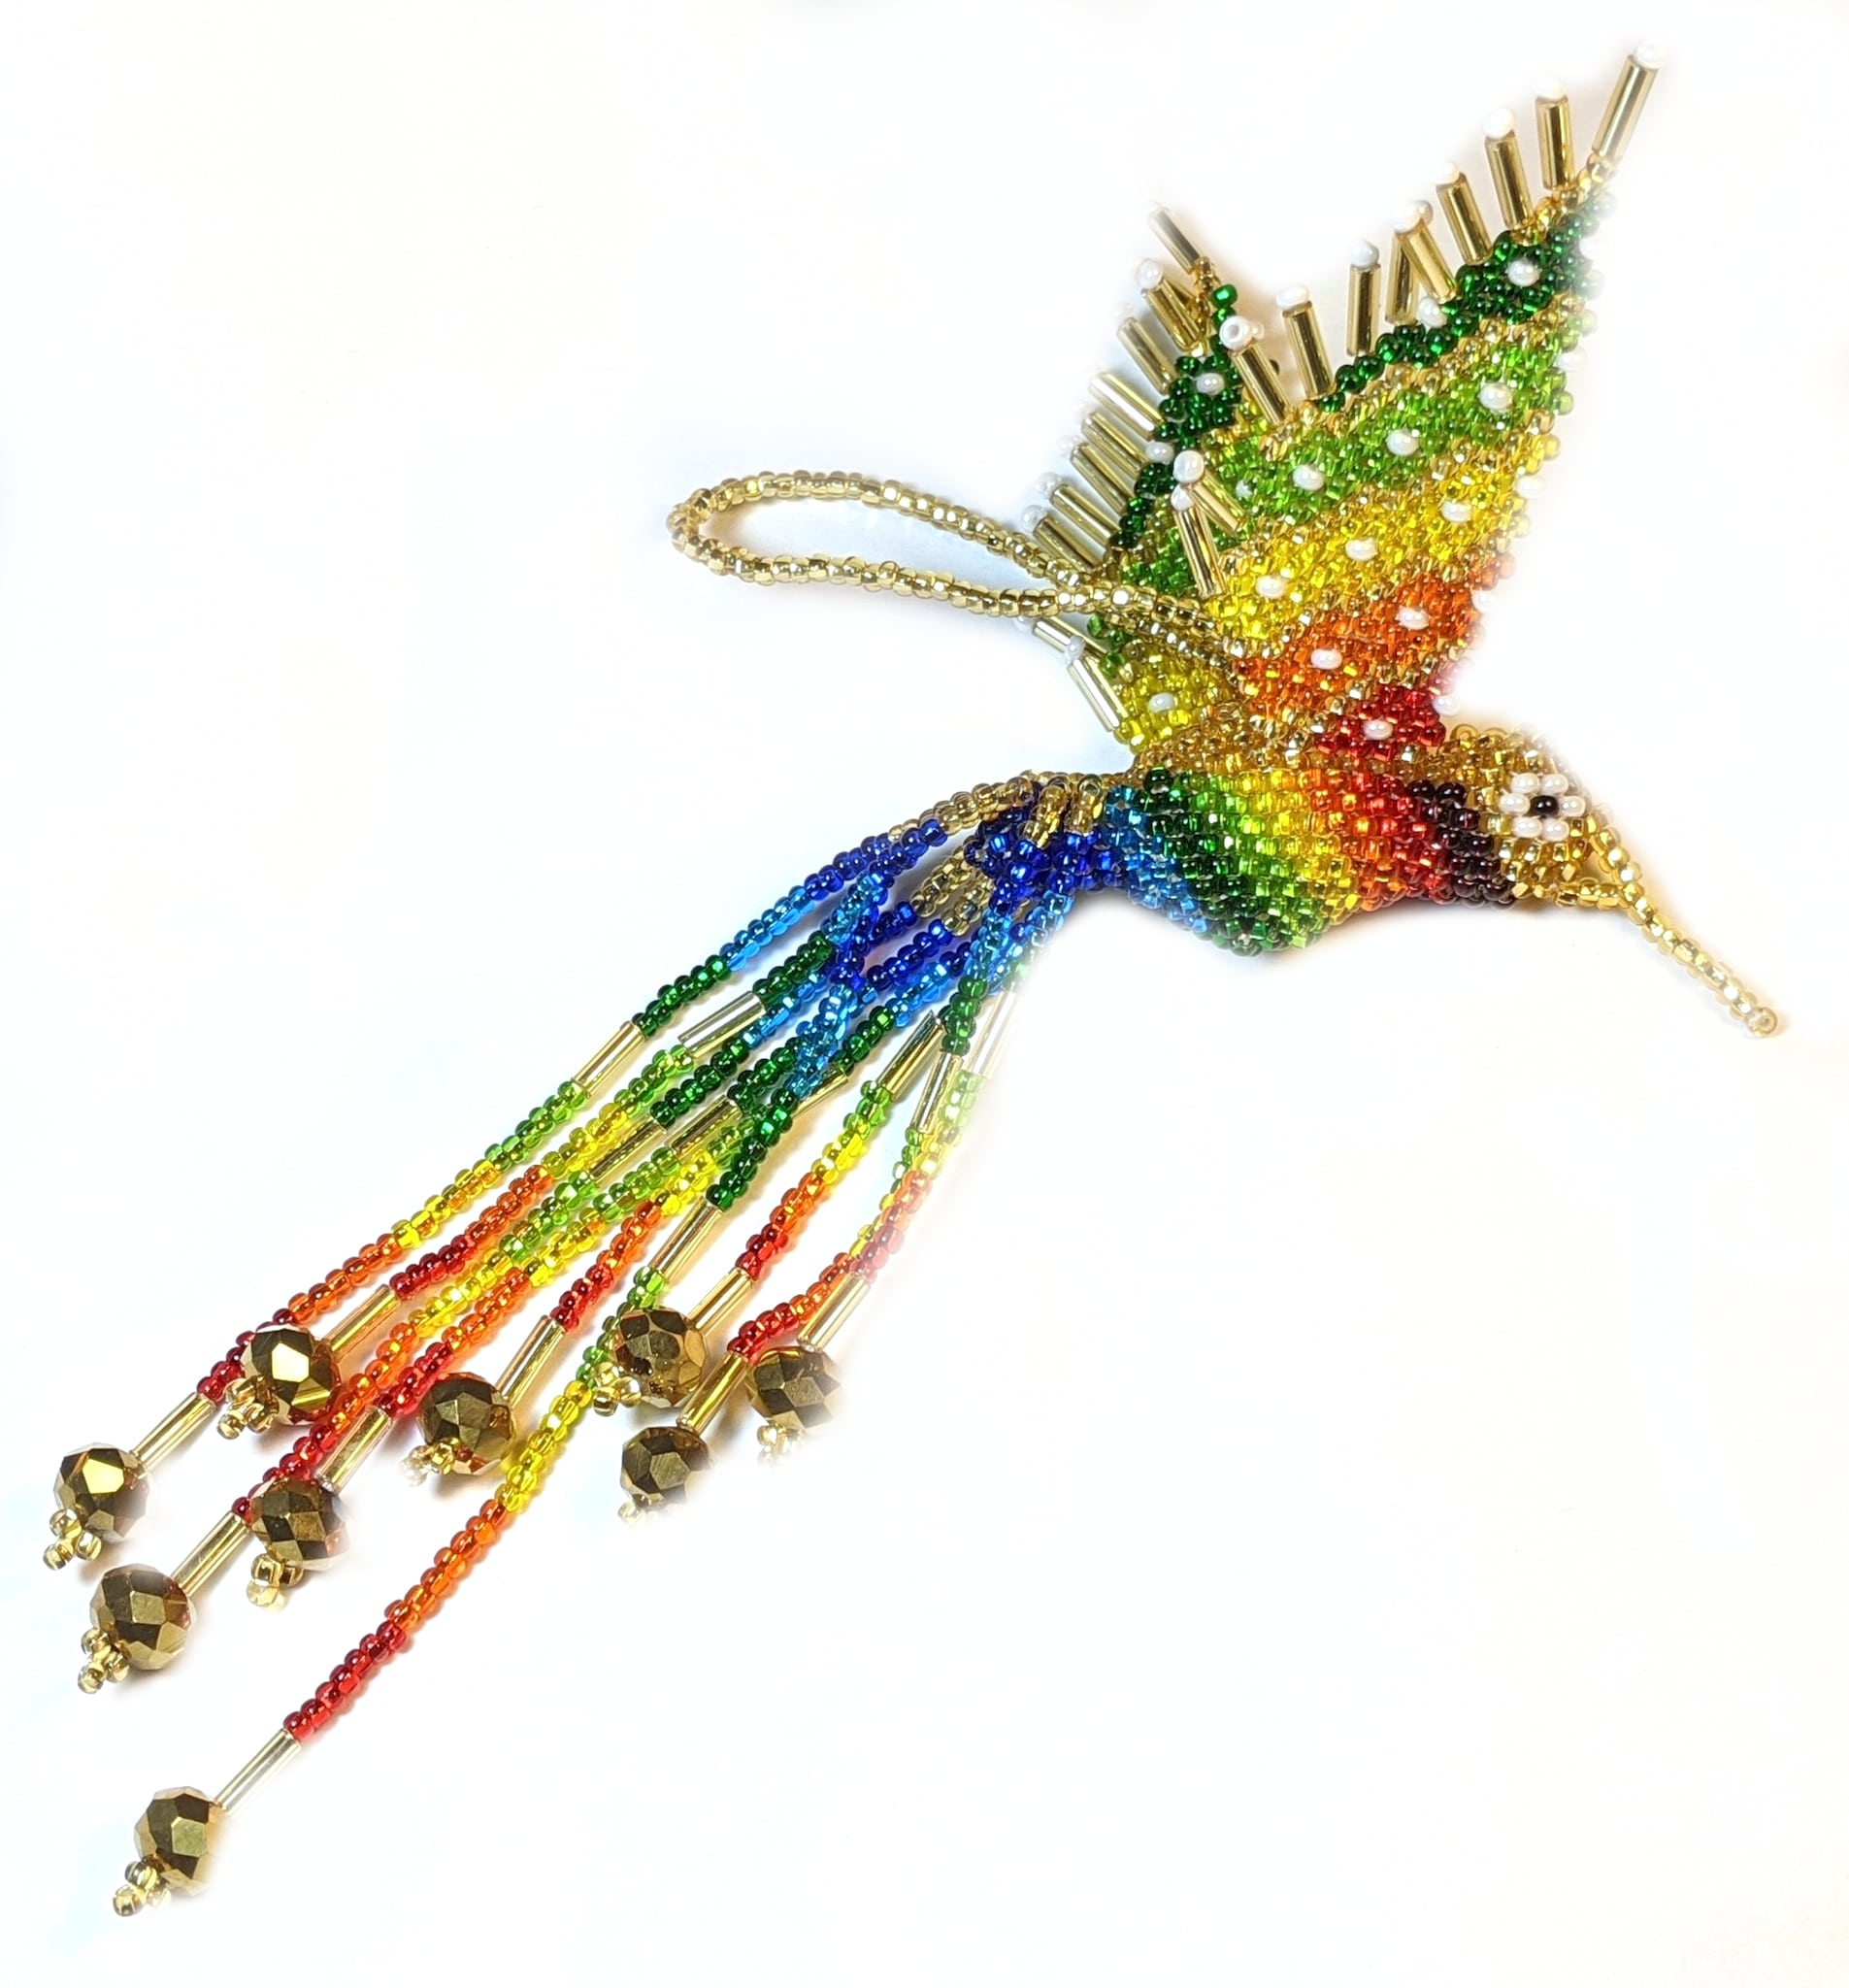 Hummingbird Beaded Ornament - Rainbow with Light Gold and Pearl White Accents